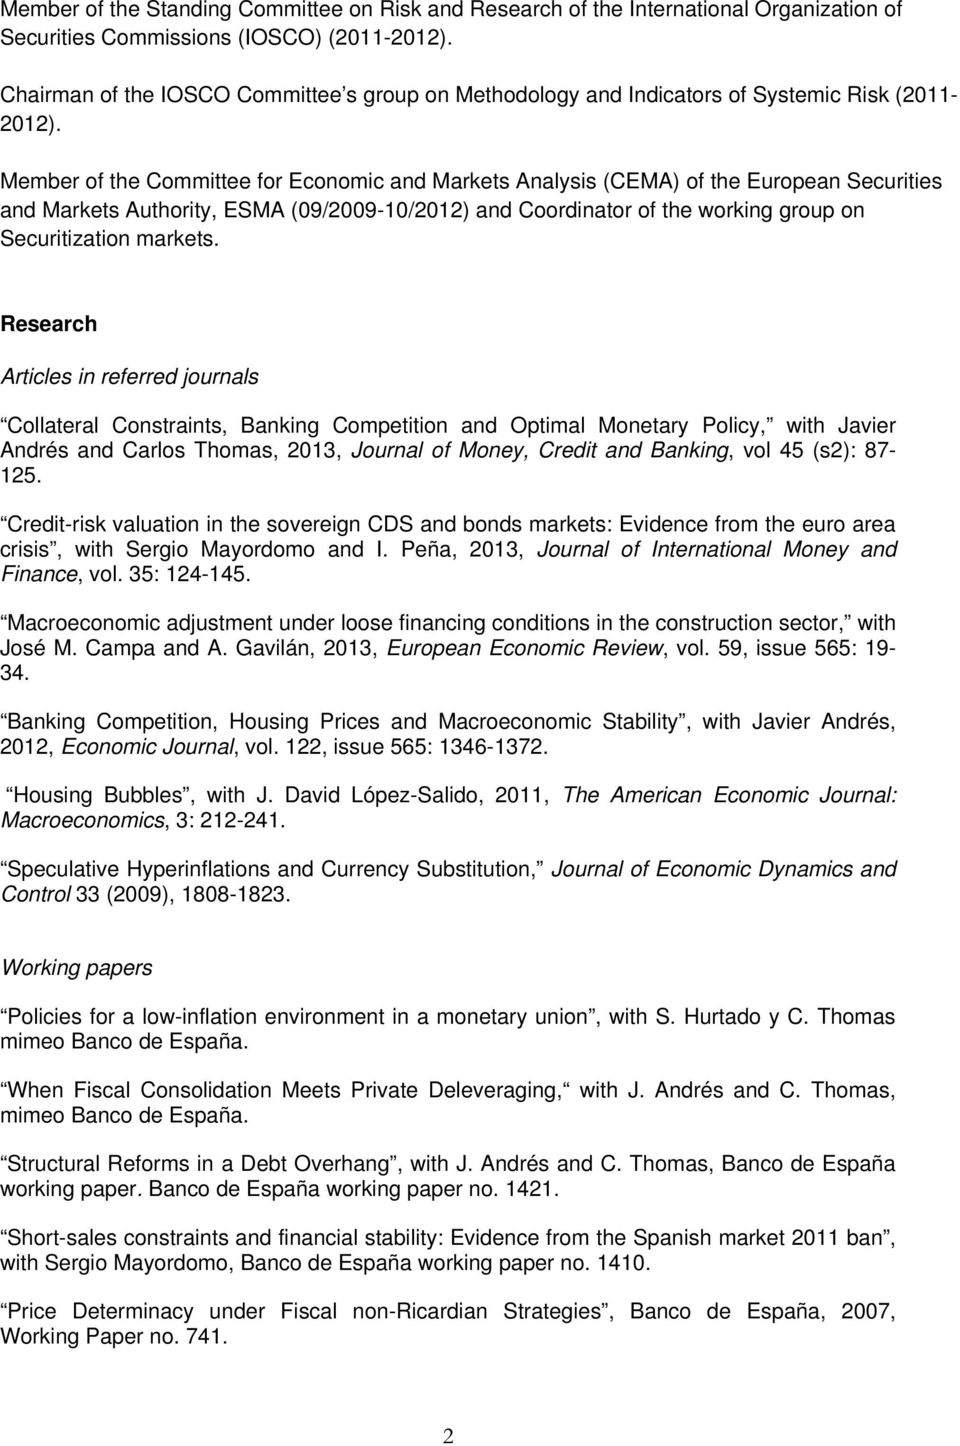 Member of the Committee for Economic and Markets Analysis (CEMA) of the European Securities and Markets Authority, ESMA (09/2009-10/2012) and Coordinator of the working group on Securitization